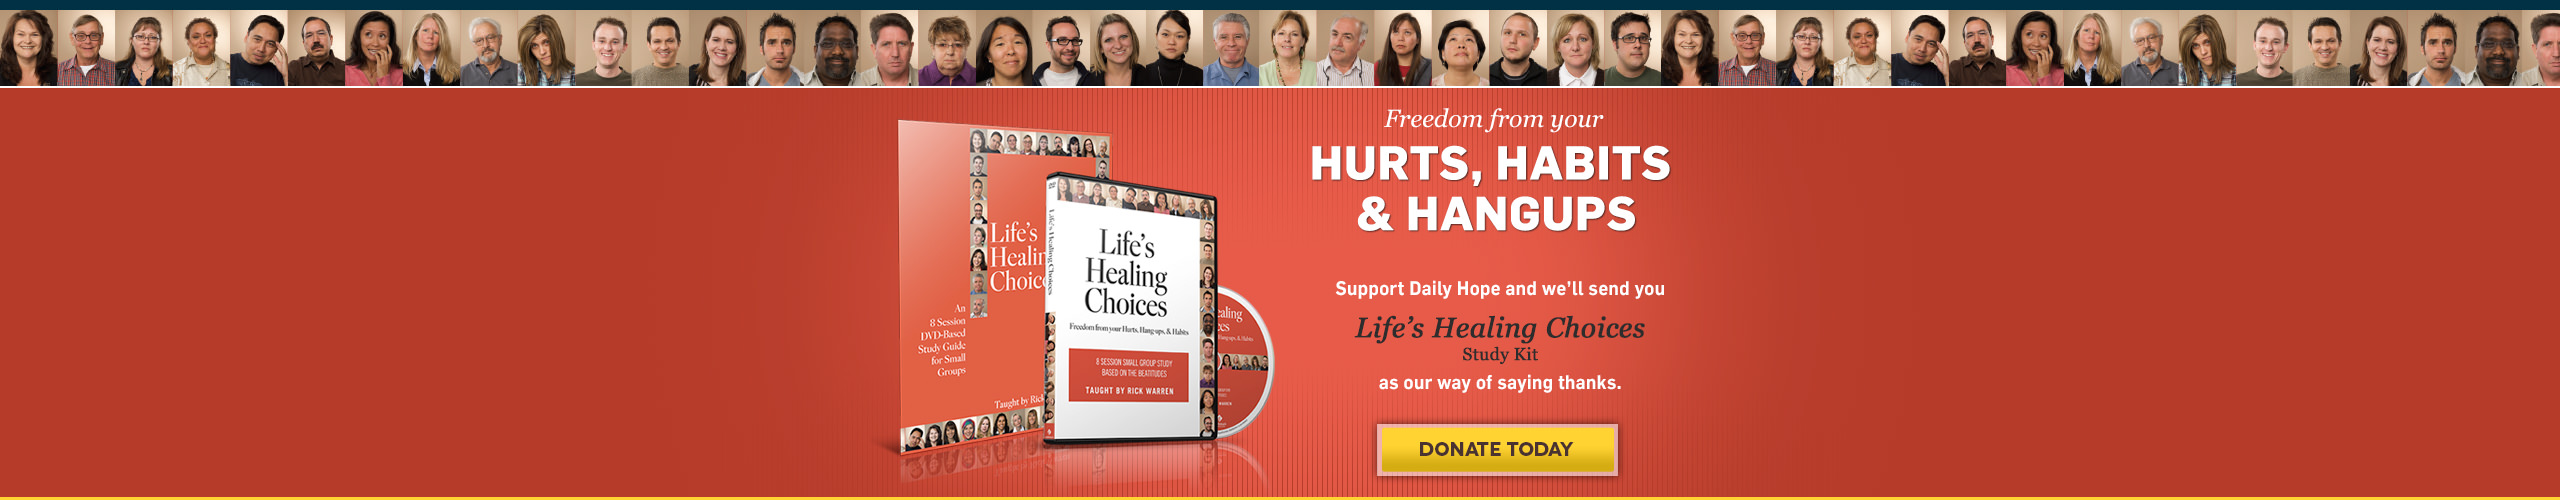 Life's-Healing-Choices